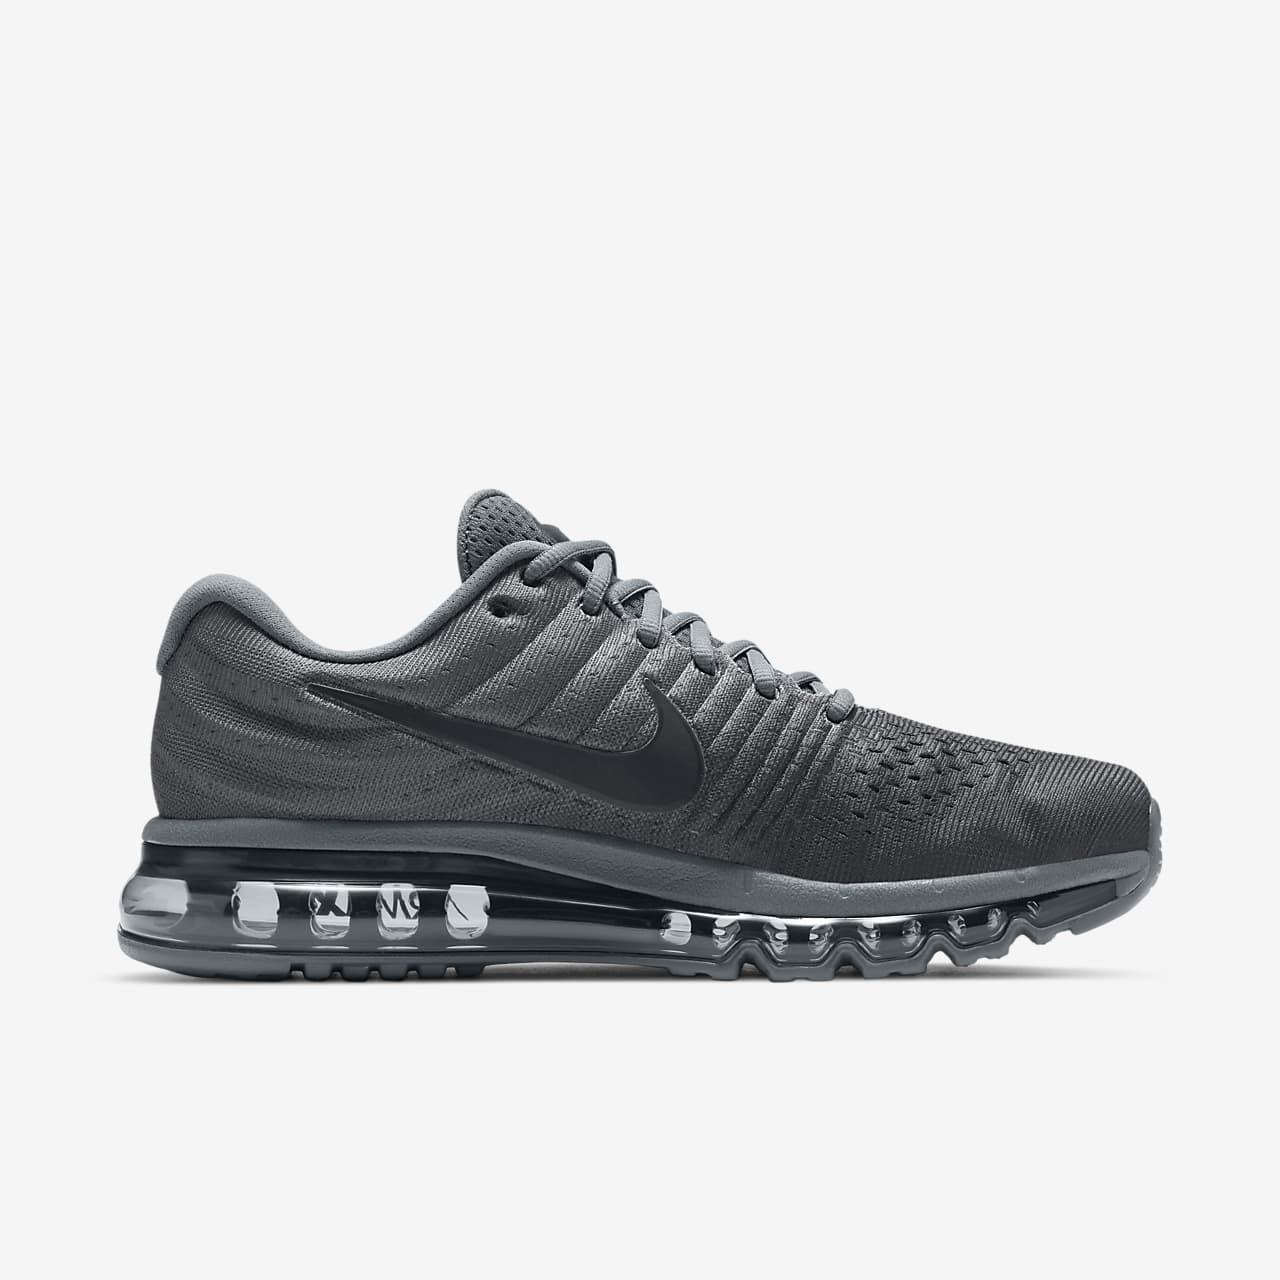 brand new dddba 691c7 ... Nike Air Max 2017 Men s Shoe